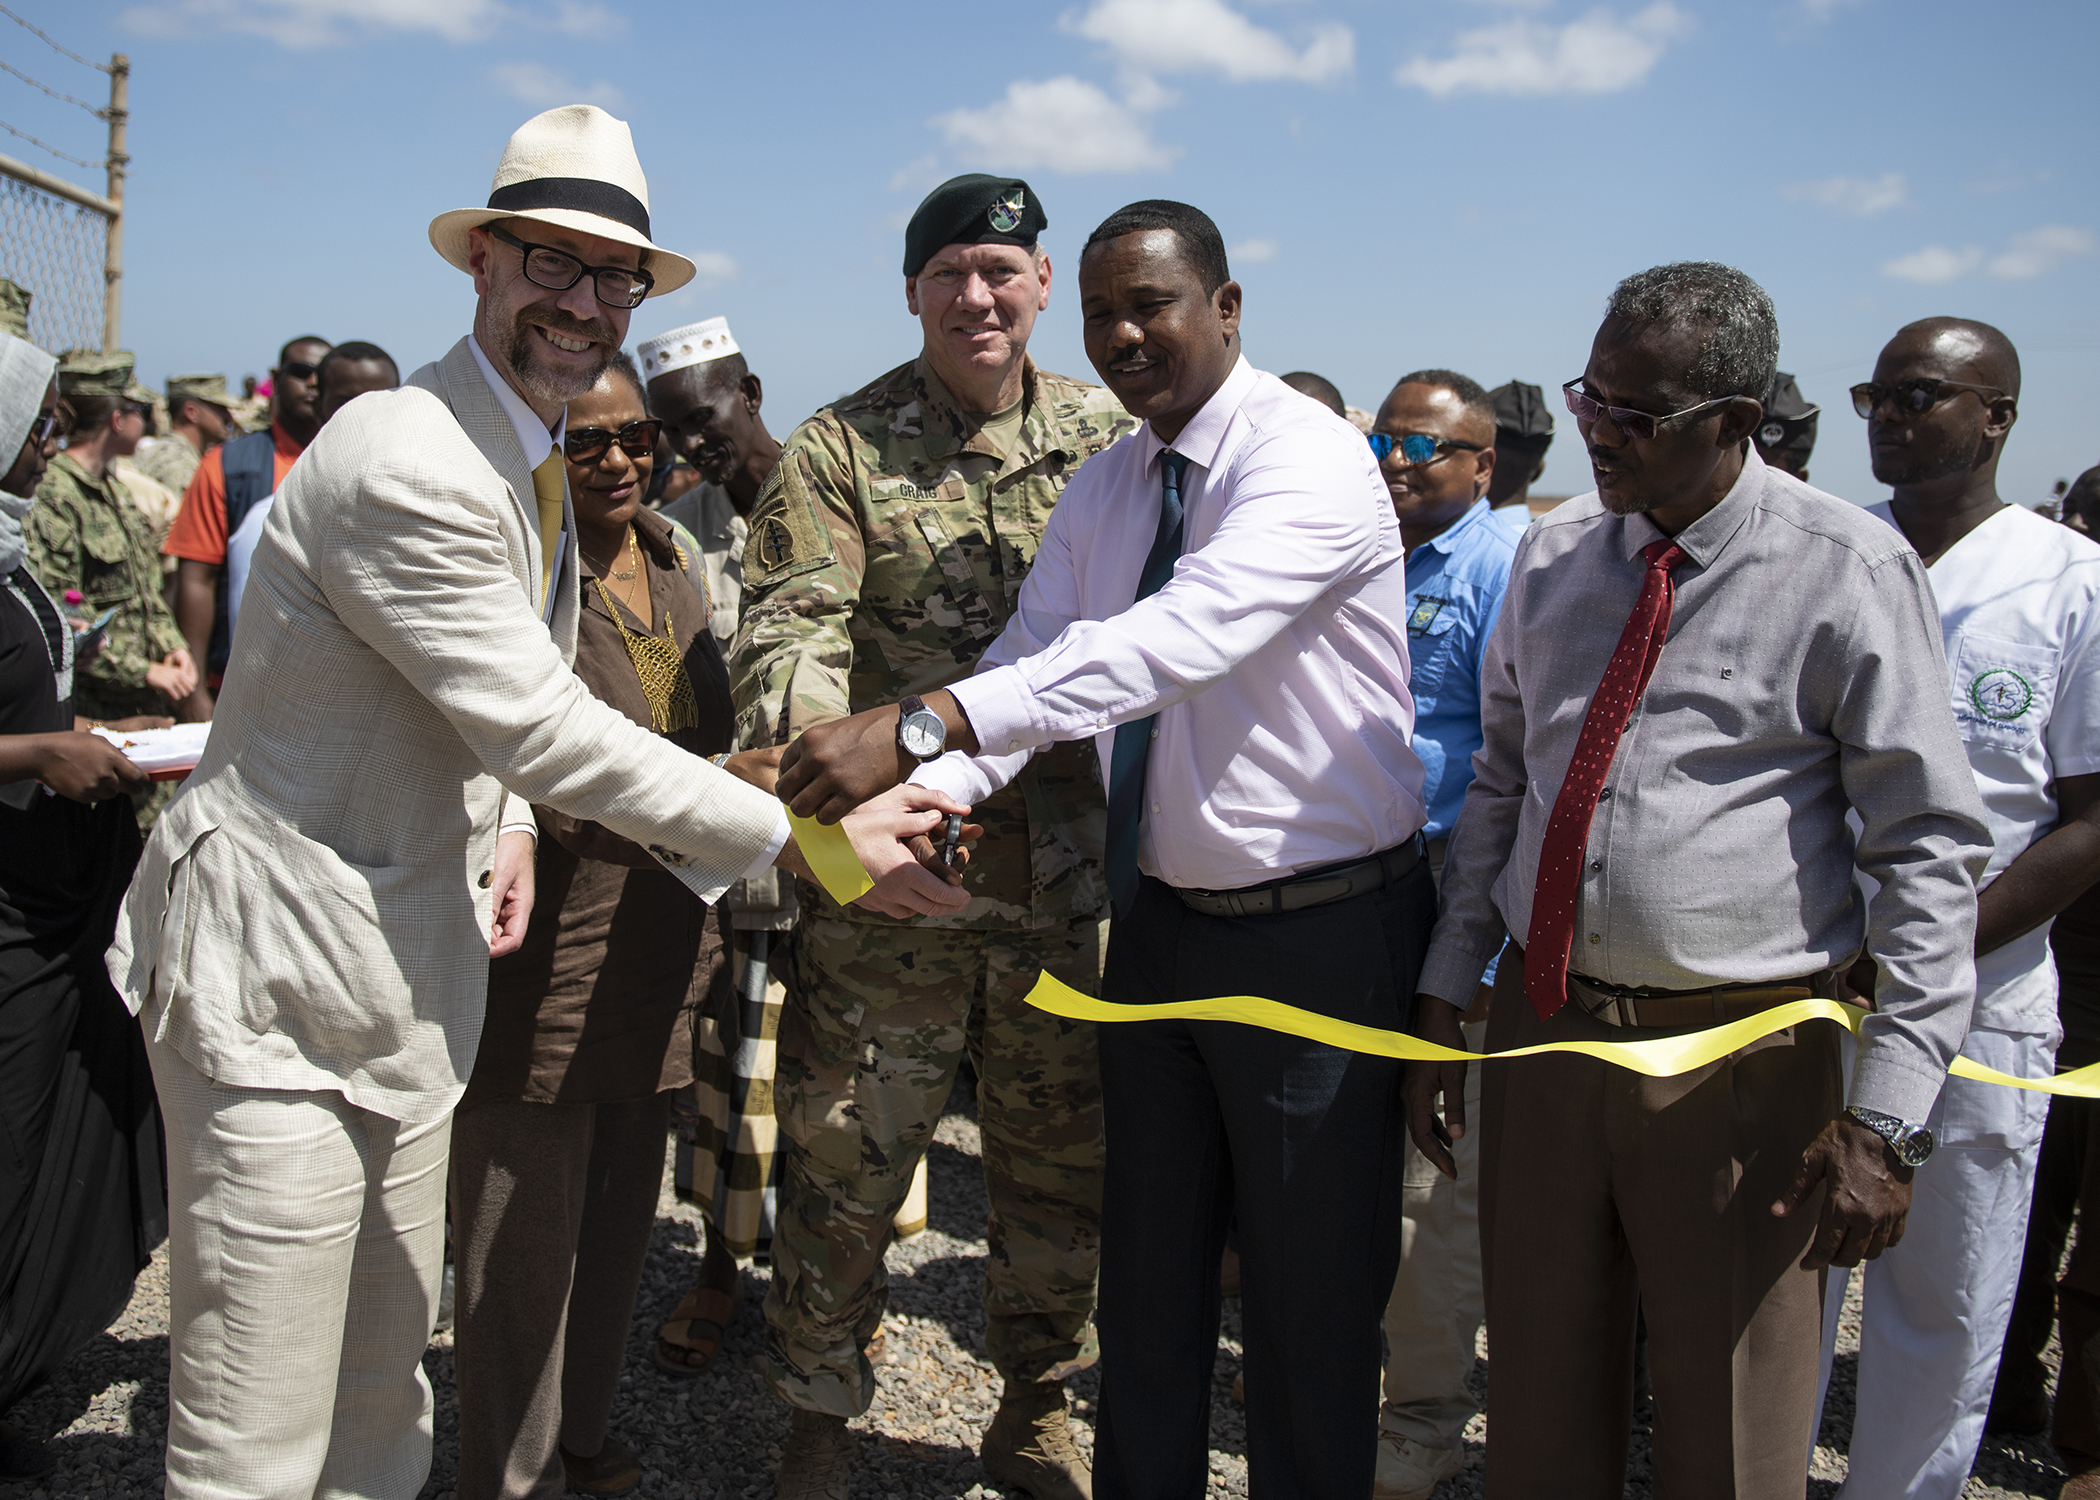 U.S. Djibouti Embassy officials, Combined Joint Task Force-Horn of Africa leadership, and Djiboutian government leaders cut the ribbon for the Ali Oune Medical Clinic during a ceremony in Ali Oune, Djibouti, Jan. 31, 2019. The clinic, which U.S. Navy Seabees from Naval Mobile Construction Battalion 1, assigned to CJTF-HOA, have been working to complete for five months, is intended to enhance the Ministry of Health for Djibouti's ability to provide basic medical, birth and after care to the Ali Oune village and its more than 1,000 residents and rural neighbors. (U.S. Air Force photo by Tech. Sgt. Shawn Nickel)